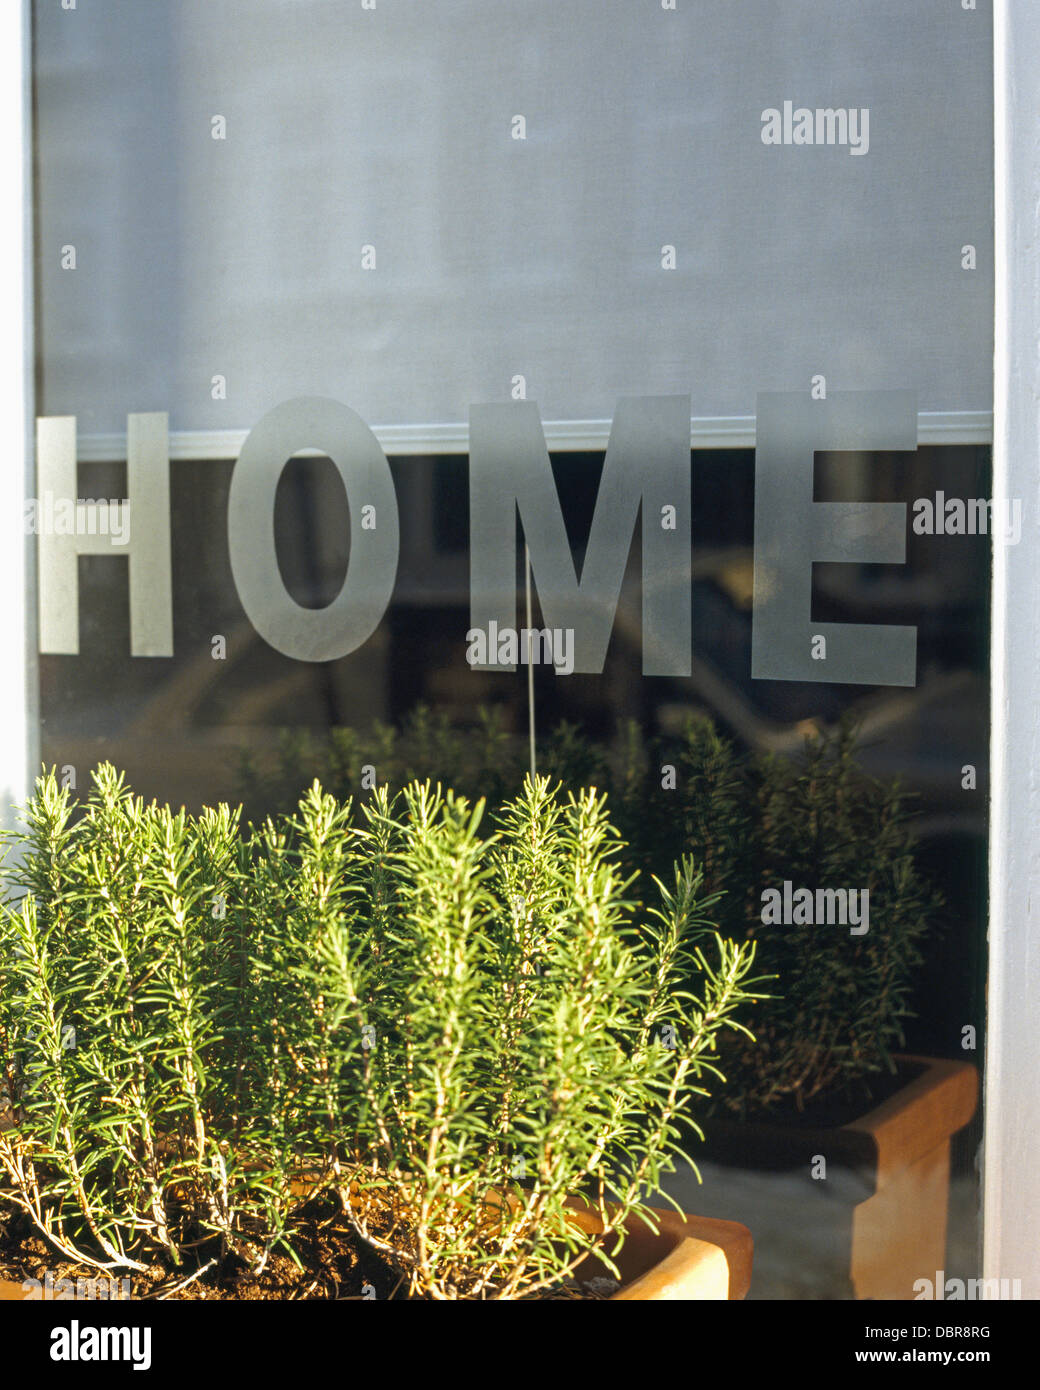 Close-up of rosemary in window box in front of window with engraved 'Home' motif - Stock Image